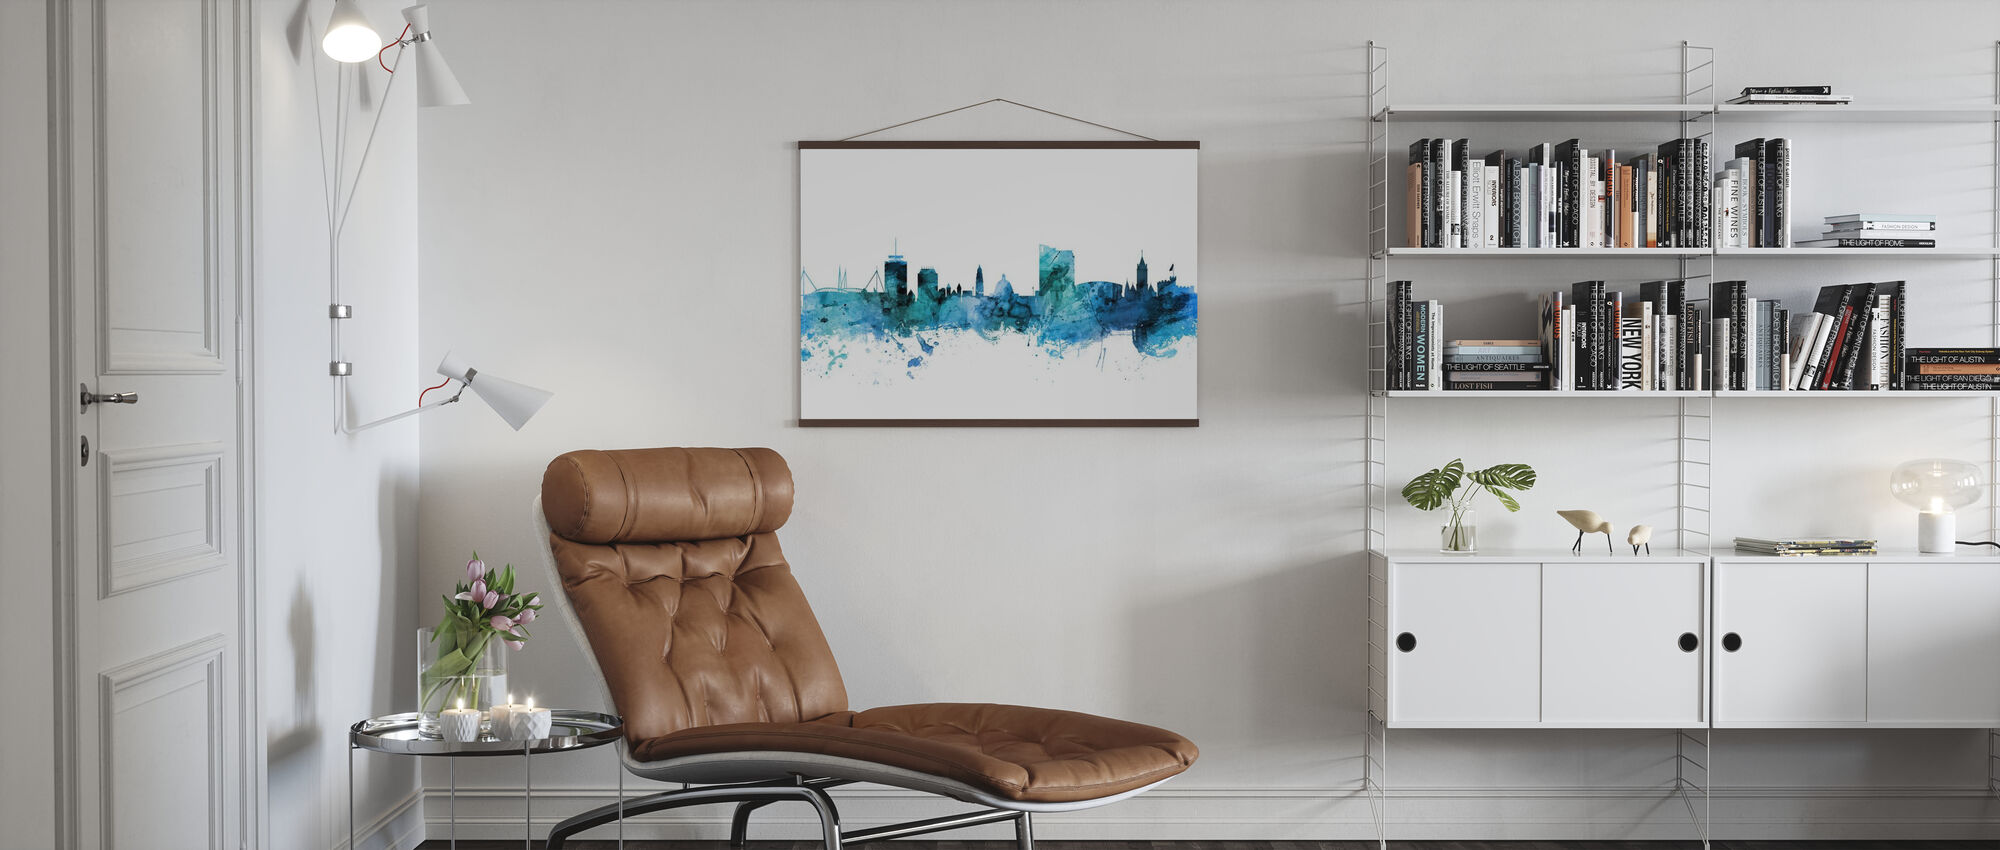 Cardiff Wales Skyline - Poster - Living Room